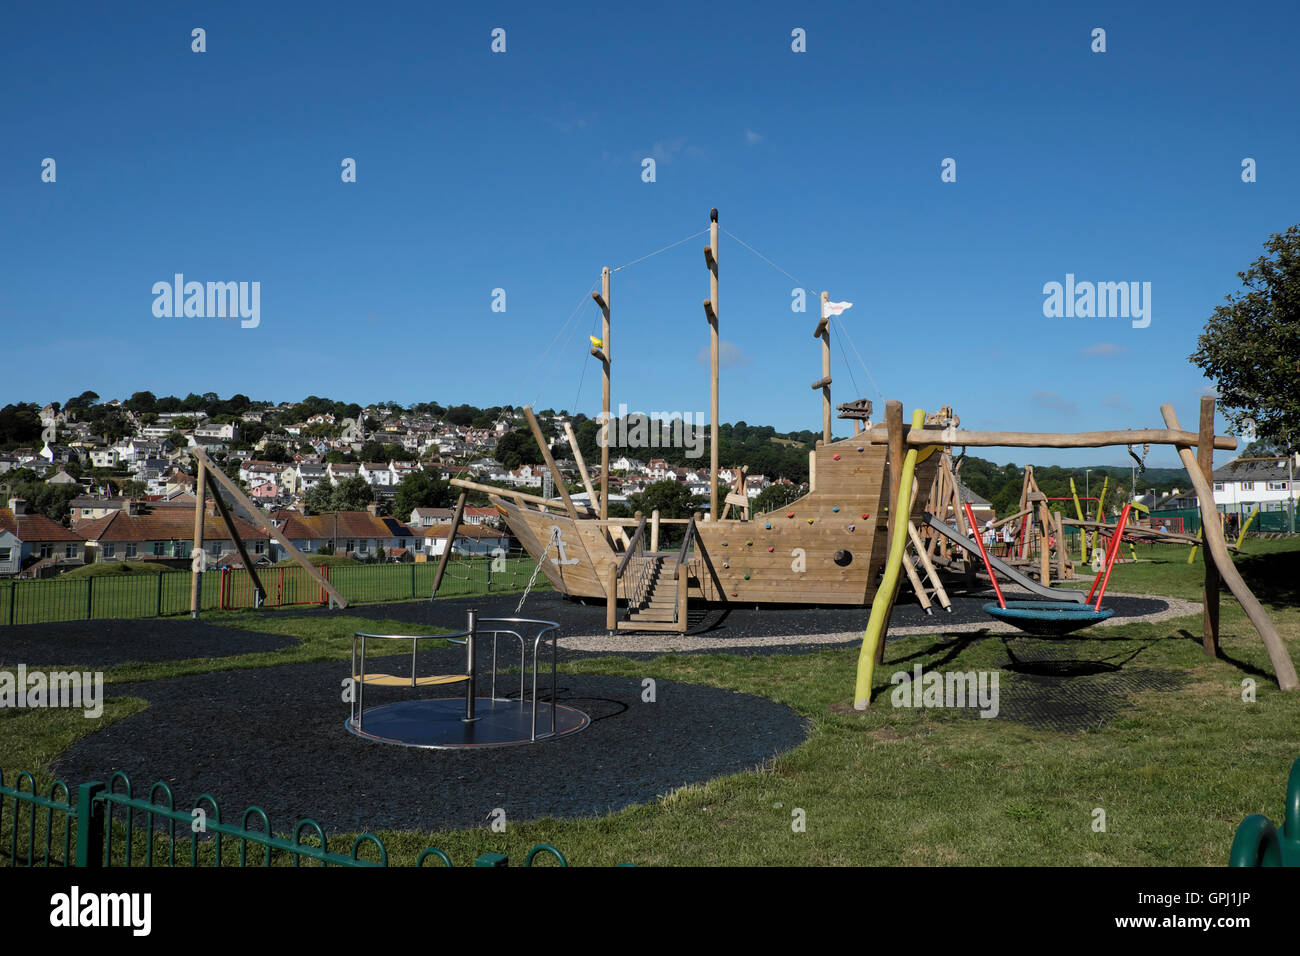 Wooden Climbing Pirate Ship Structure In Playground In Summer Lyme